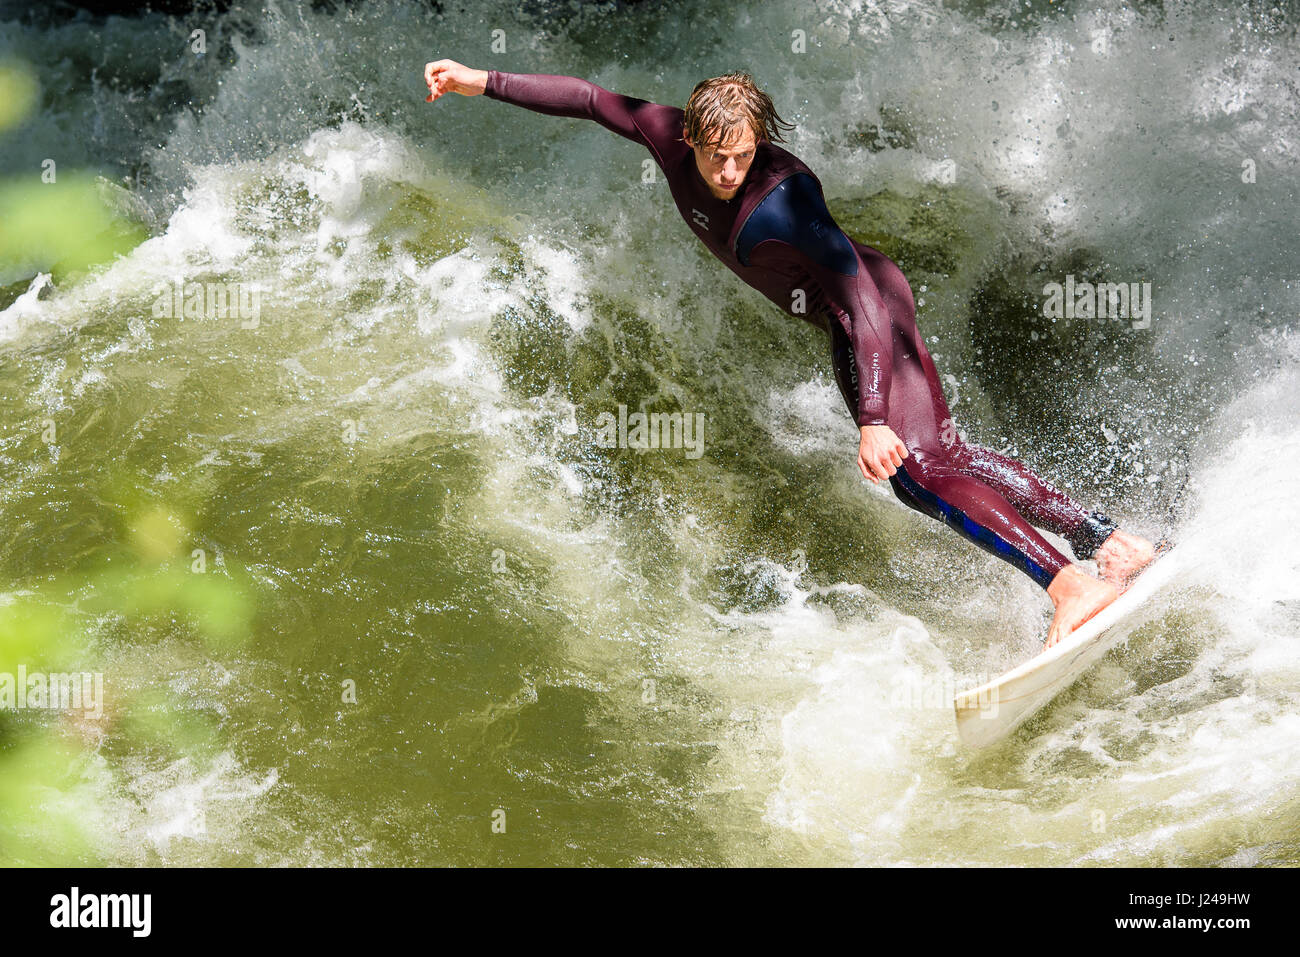 Munich, Germany. 24th Apr, 2017. A man surfs in the English Garden in Munich, Germany, 24 April 2017. Photo: Florian - Stock Image